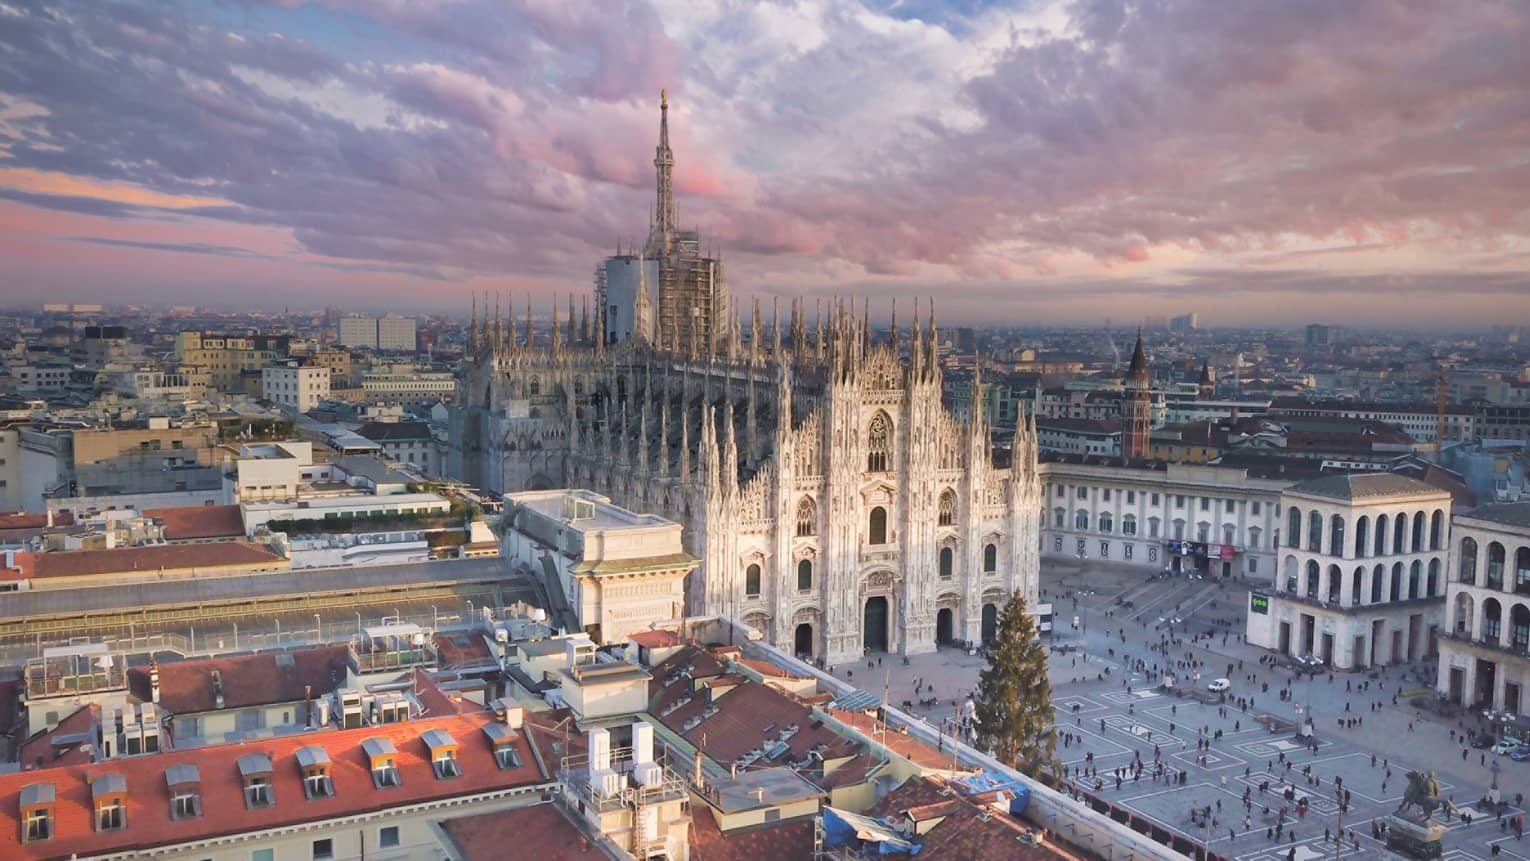 Aerial view of Milan, historic Duomo cathedral church towers at sunset